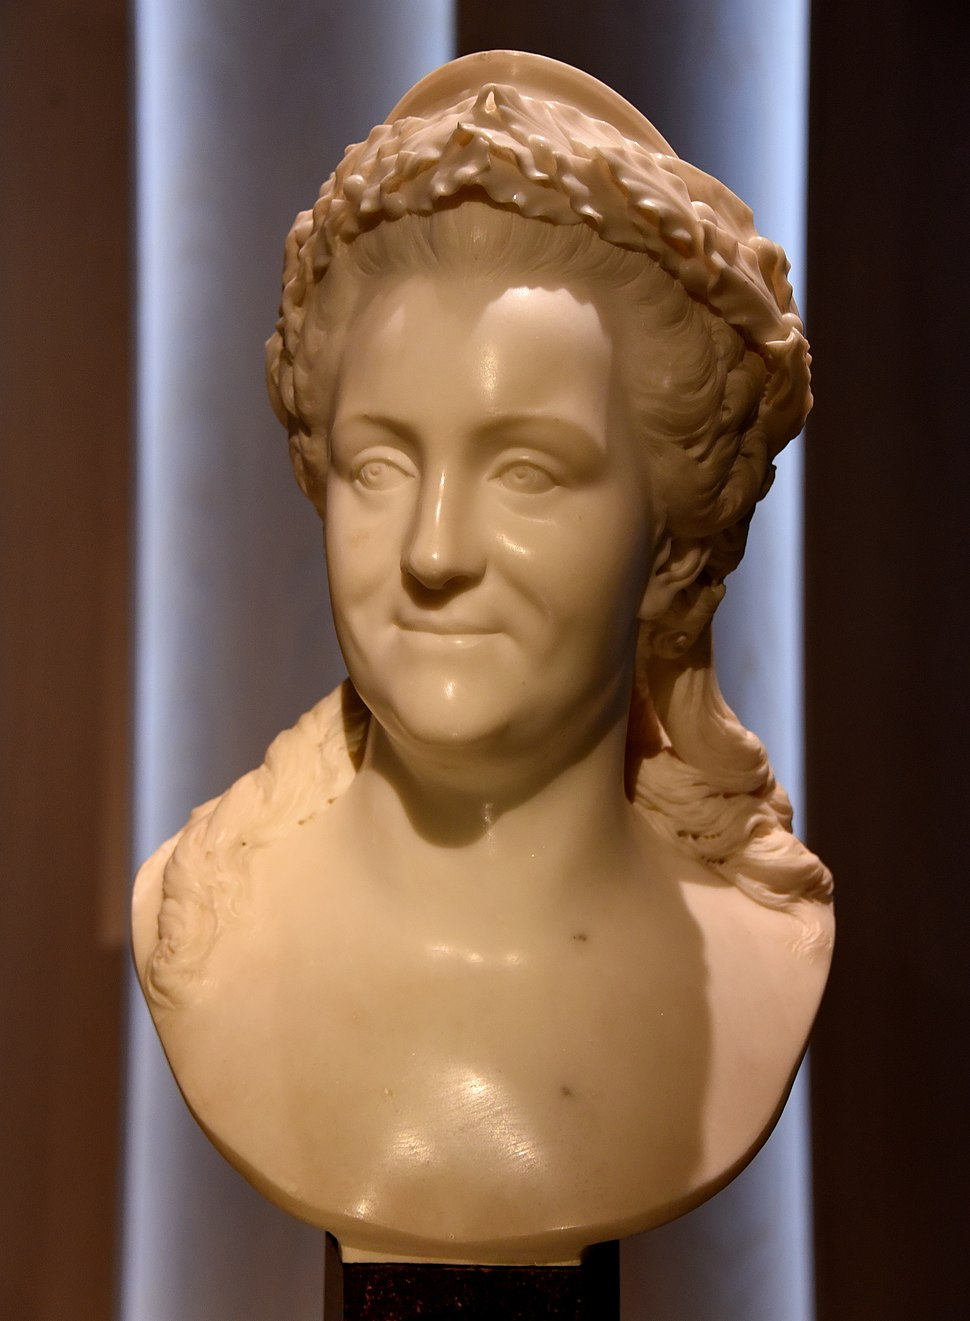 Marble bust of Catherine the Great, 1771 CE. From Rome, Italy. By Fedot Shubin, commissioned by Ivan Shuvalov for Catherine the Great. The Victoria and Albert Museum, London